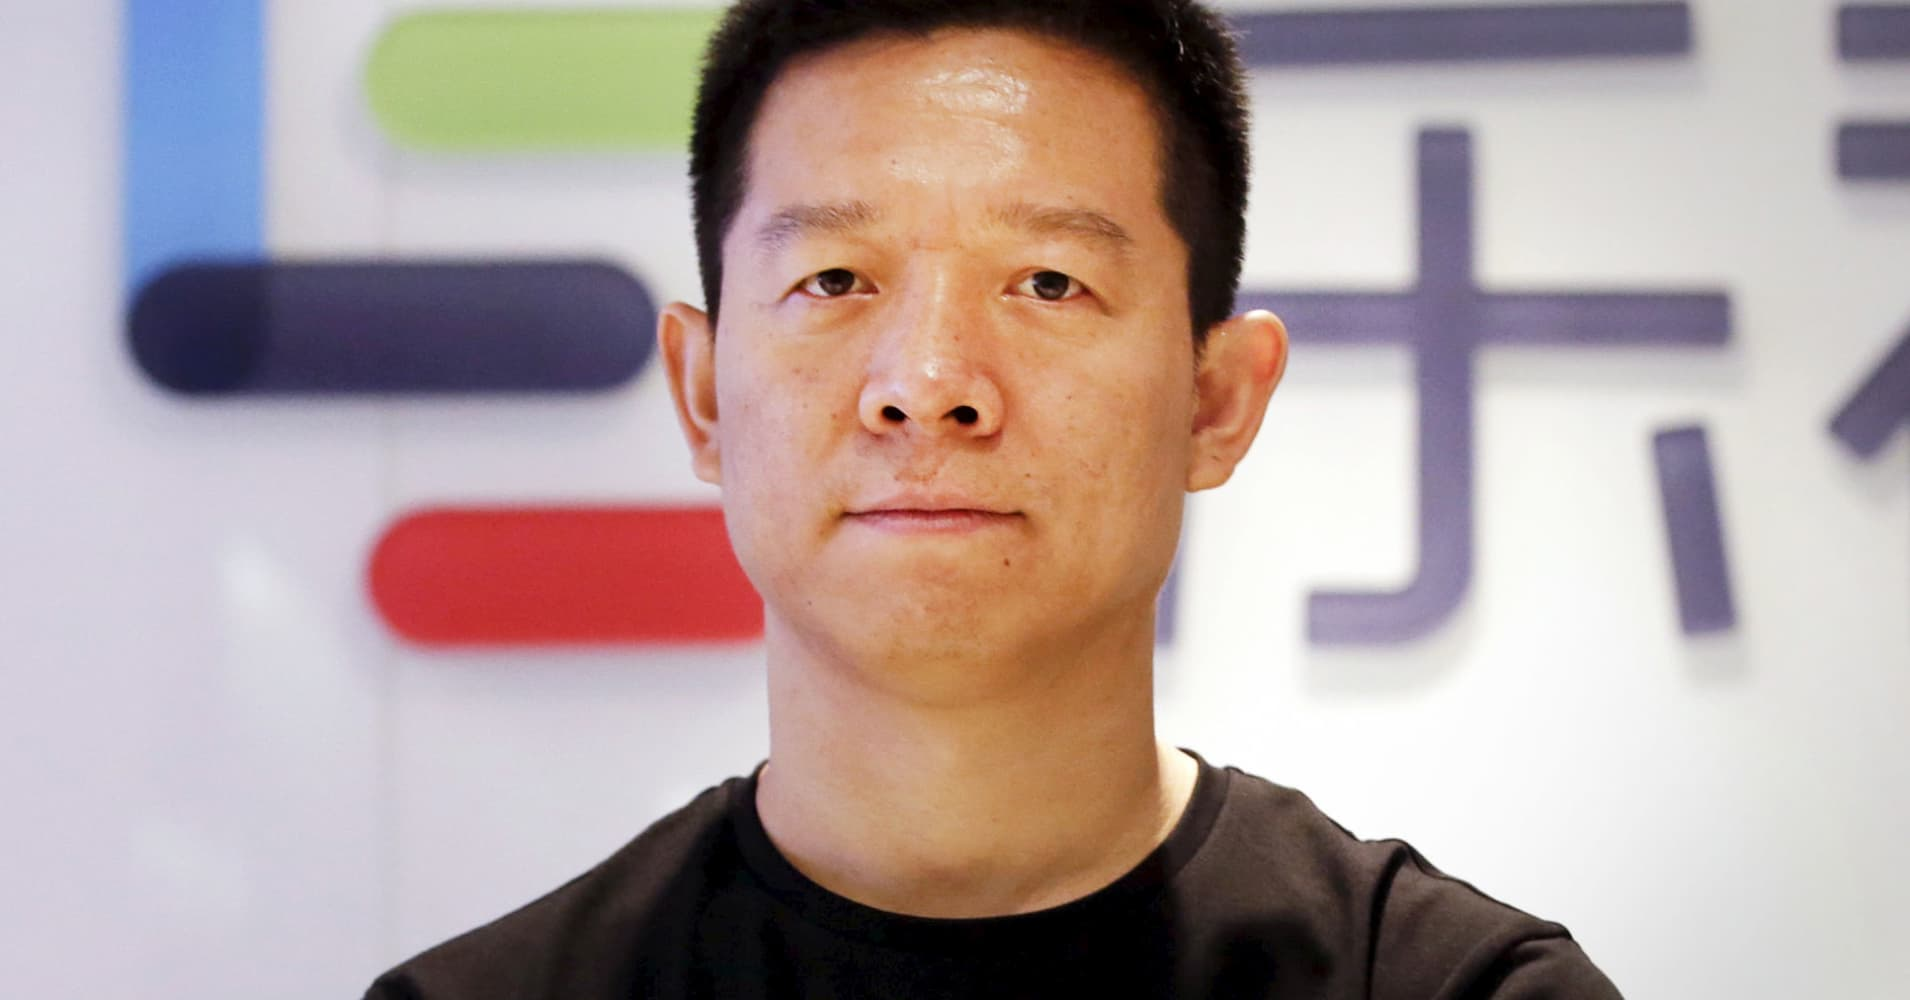 LeEco cuts 325 U.S. employees, will focus on Chinese-speakers